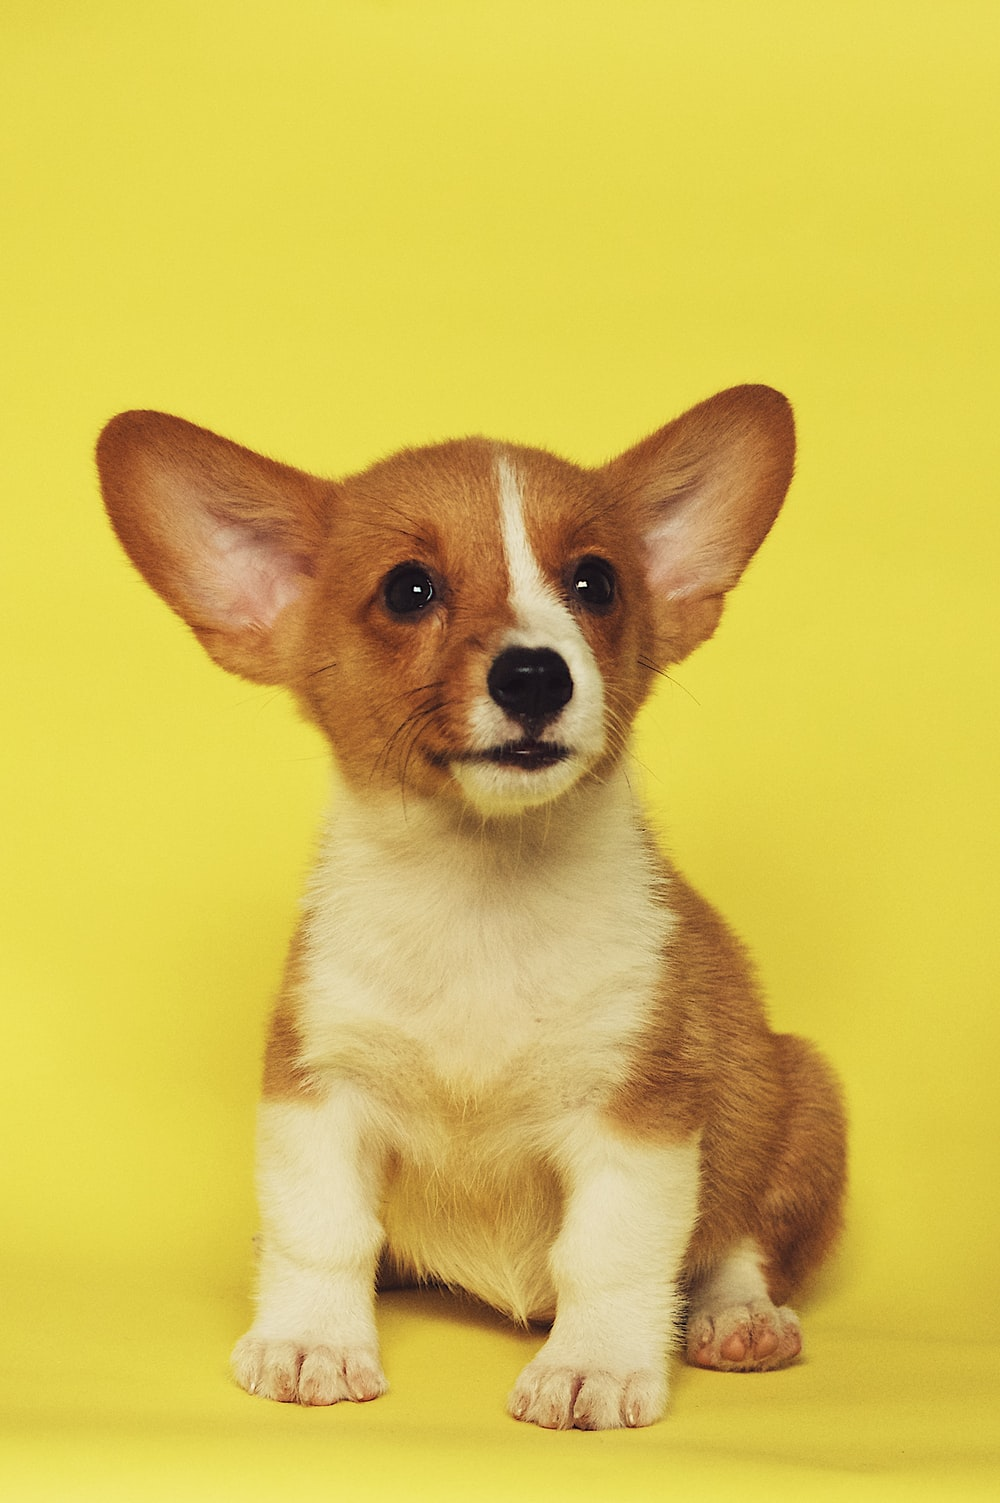 short-coated white and brown puppy sitting on yellow surface